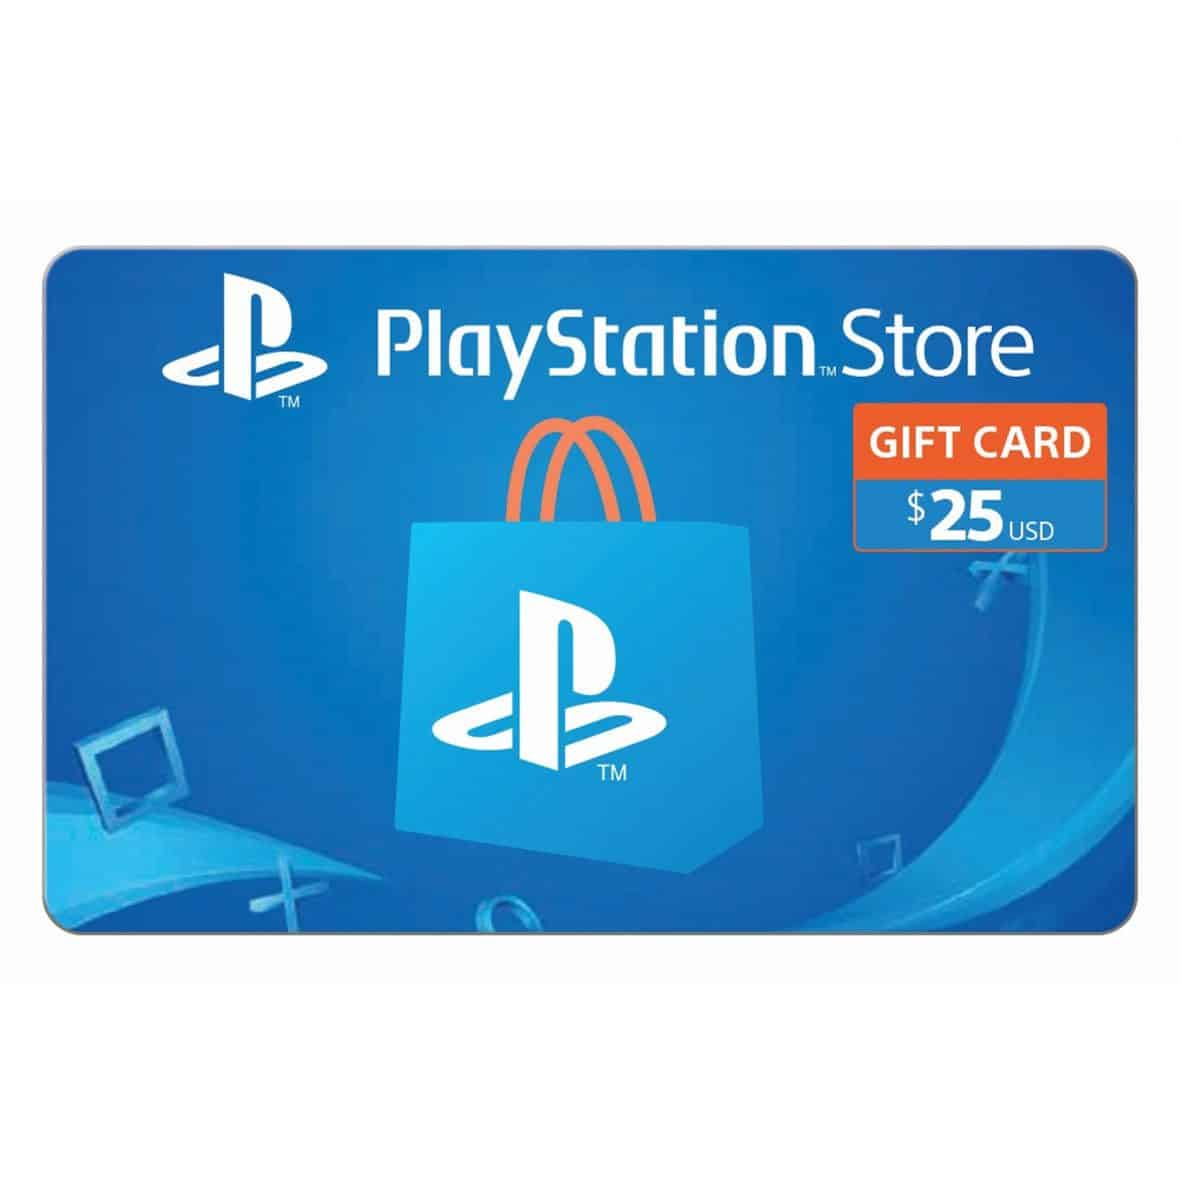 can you use gift cards on playstation store